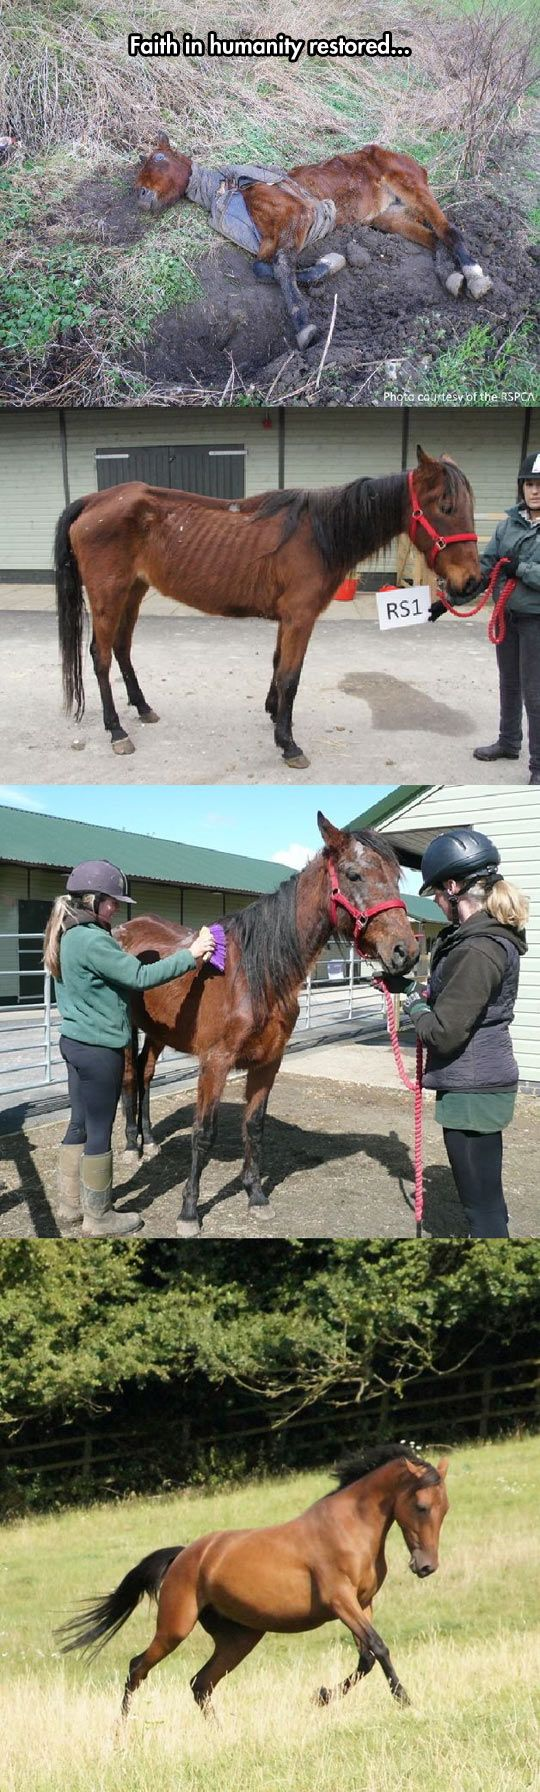 Little Survivor Finds A Home // tags: funny pictures - funny photos - funny images - funny pics - funny quotes - #lol #humor #funnypictures: Beautiful Horses, Help Animals, Humanity Restored, Horse Deserves, Faith In Humanity, Survivor Finds, People Savin